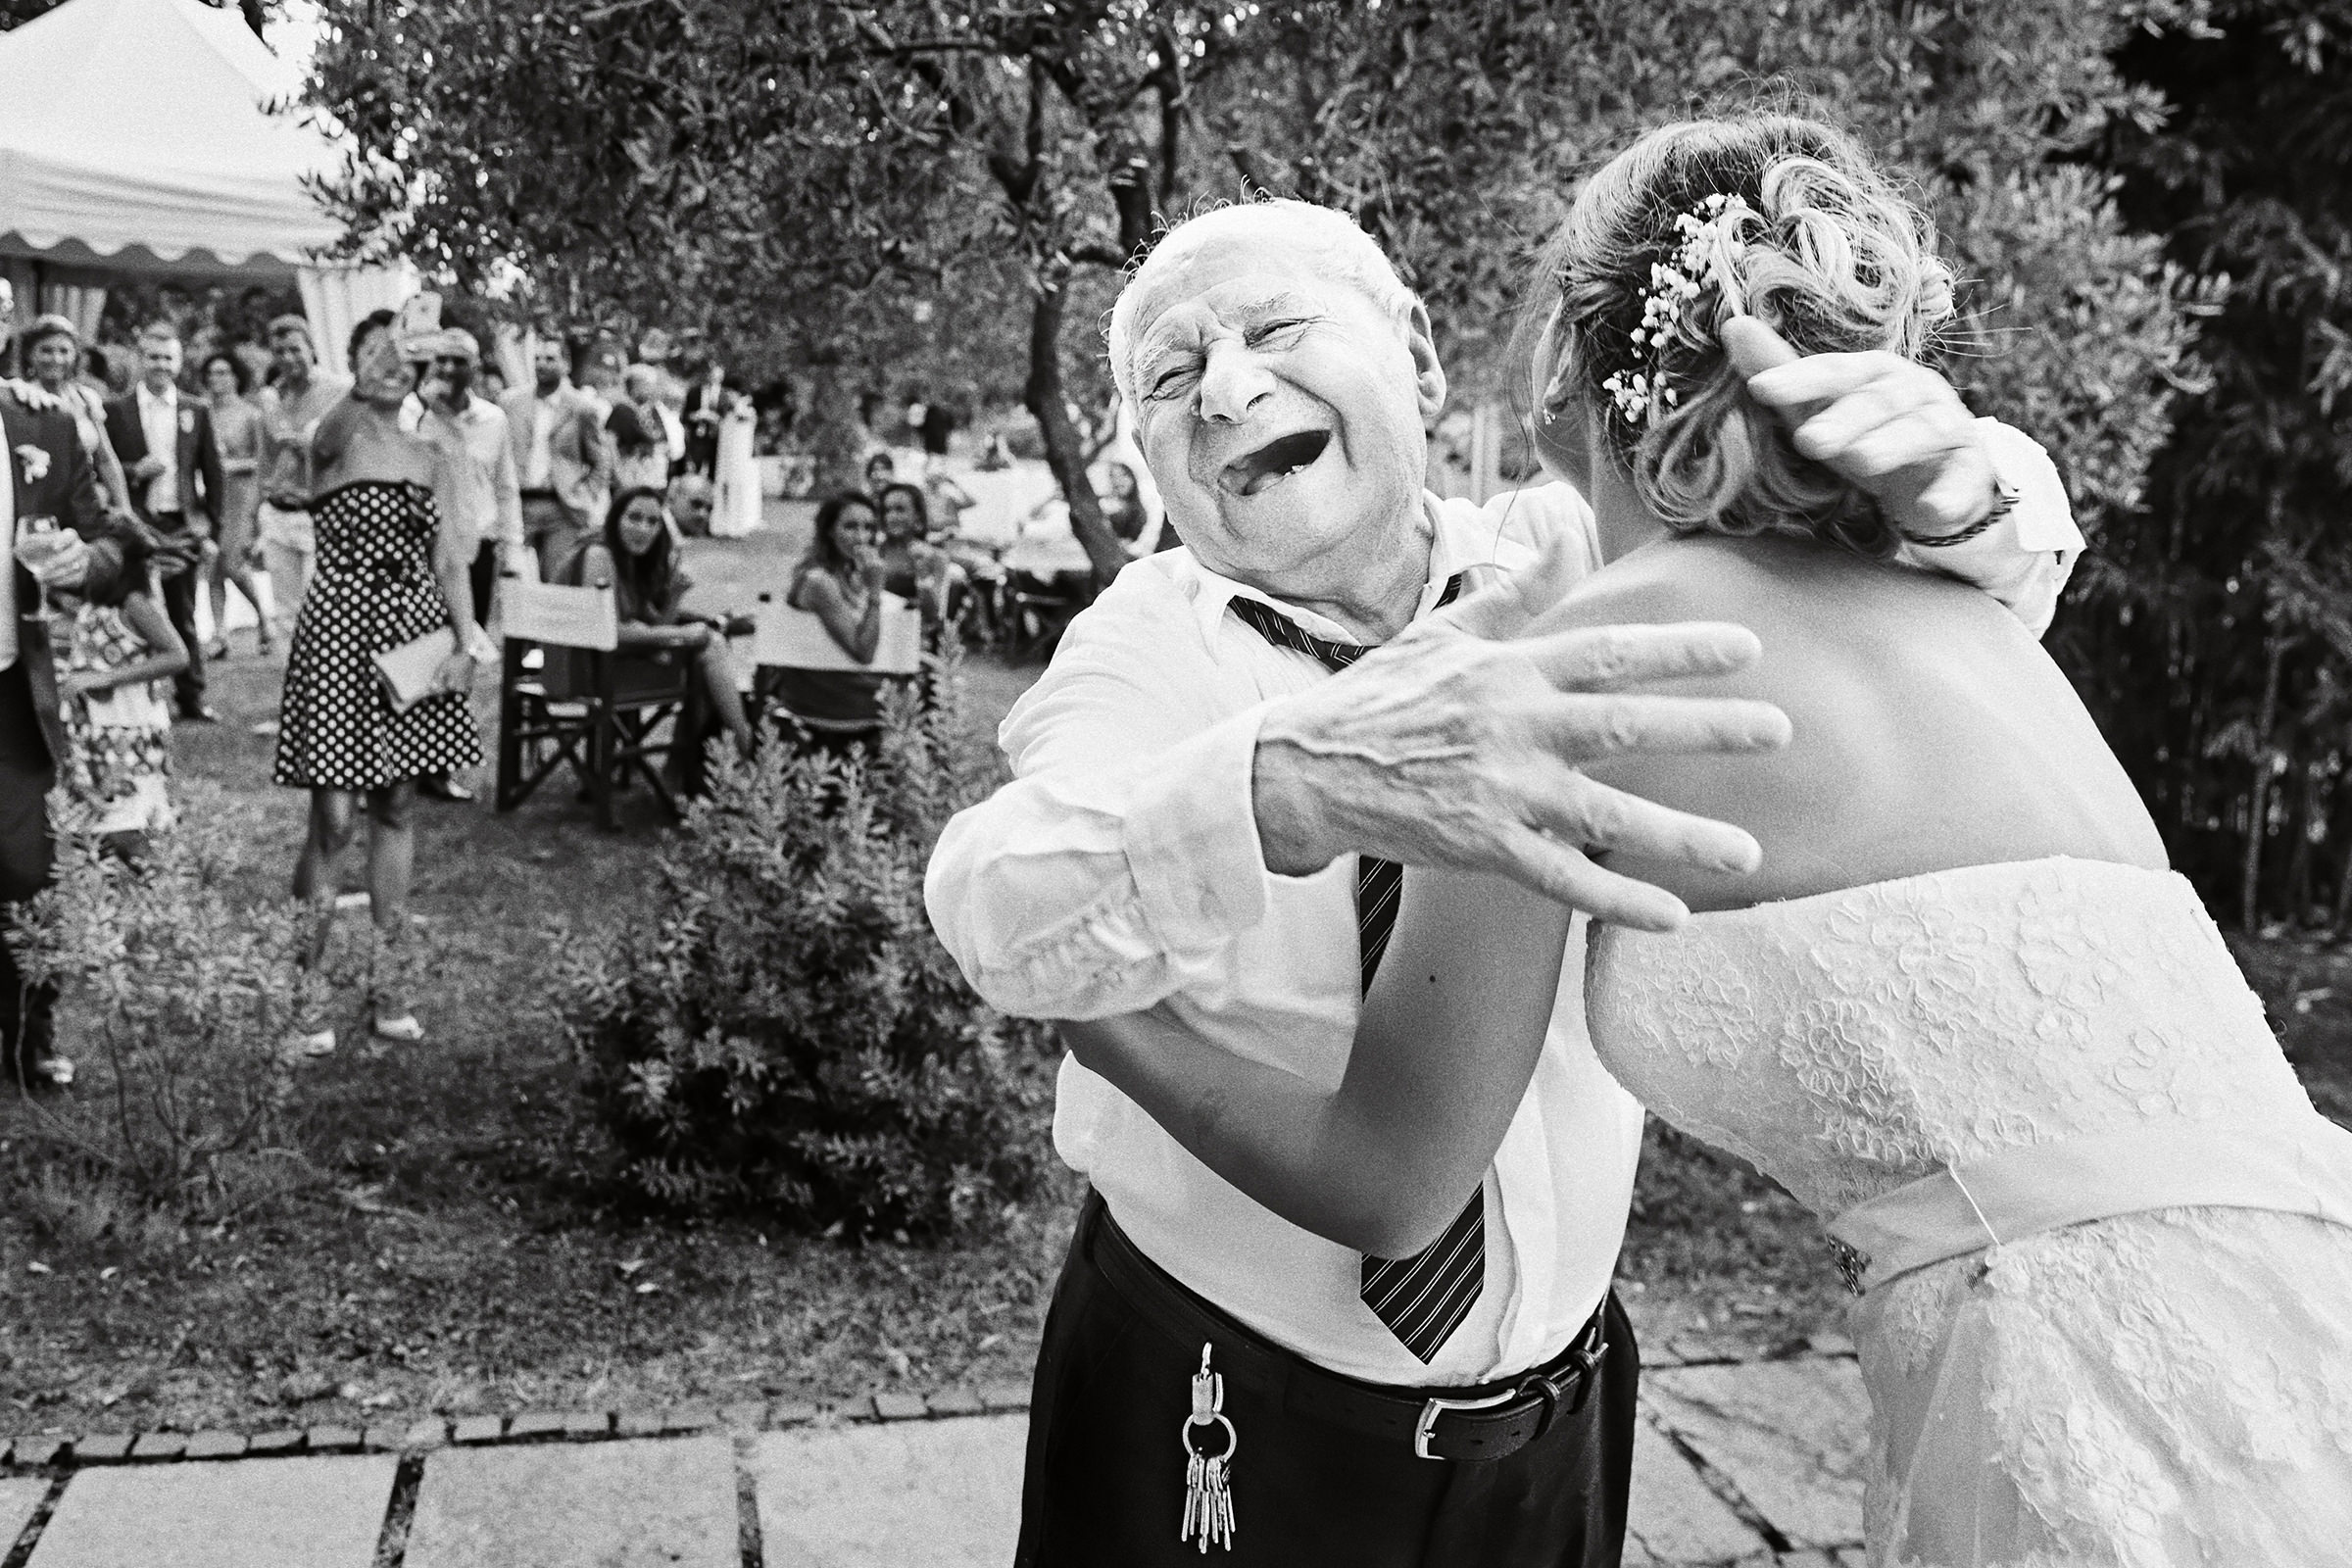 Bride embraces her laughing grandfather - Andrea Bagnasco - Italy